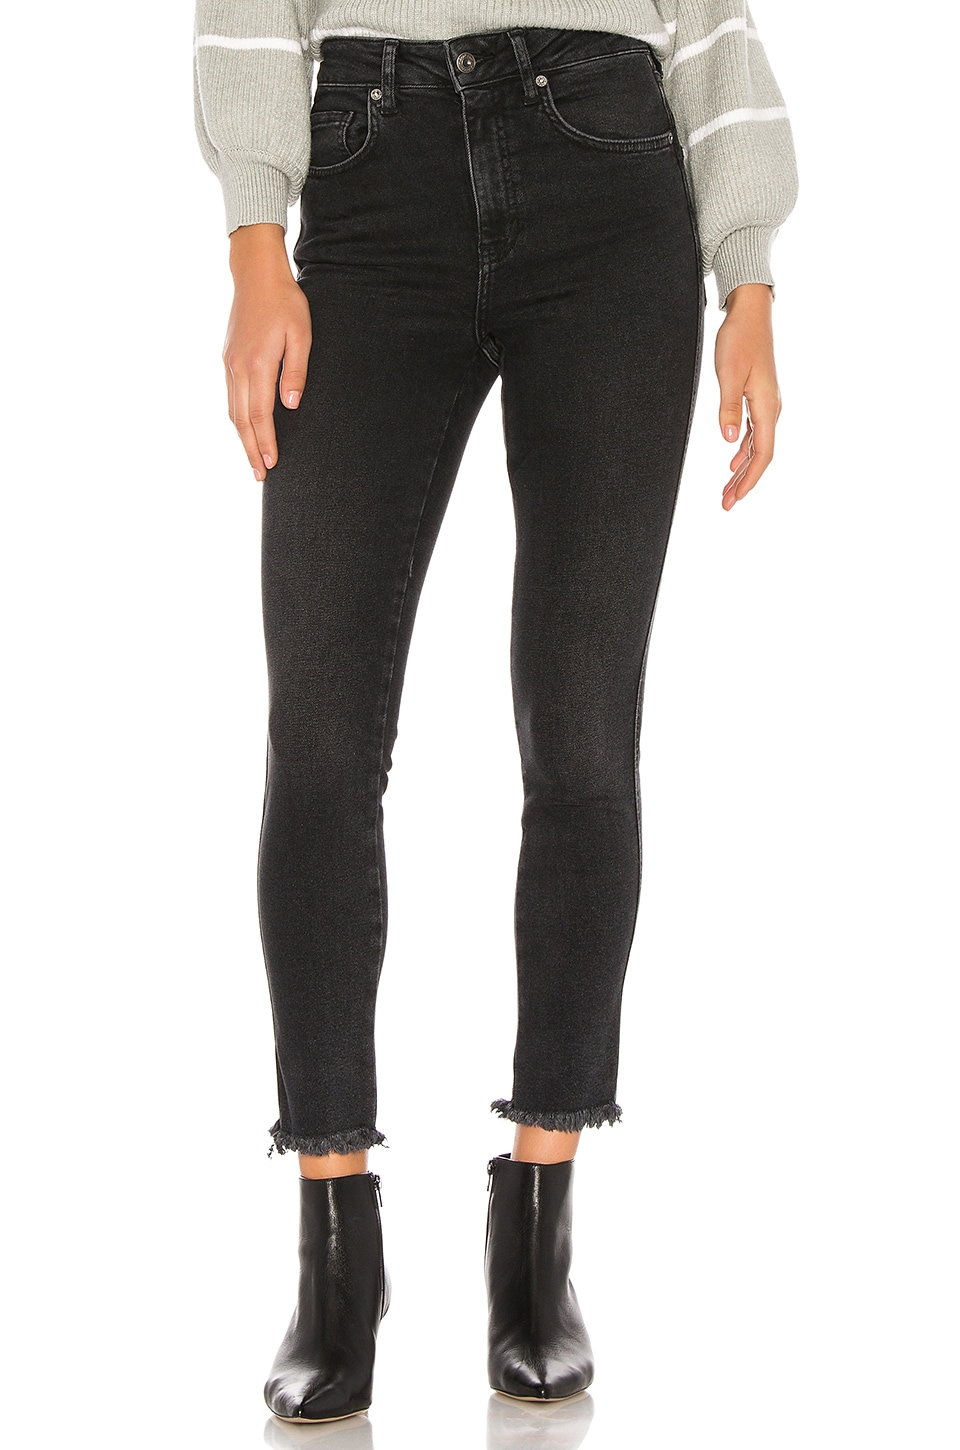 Free People High Rise Jegging in Black